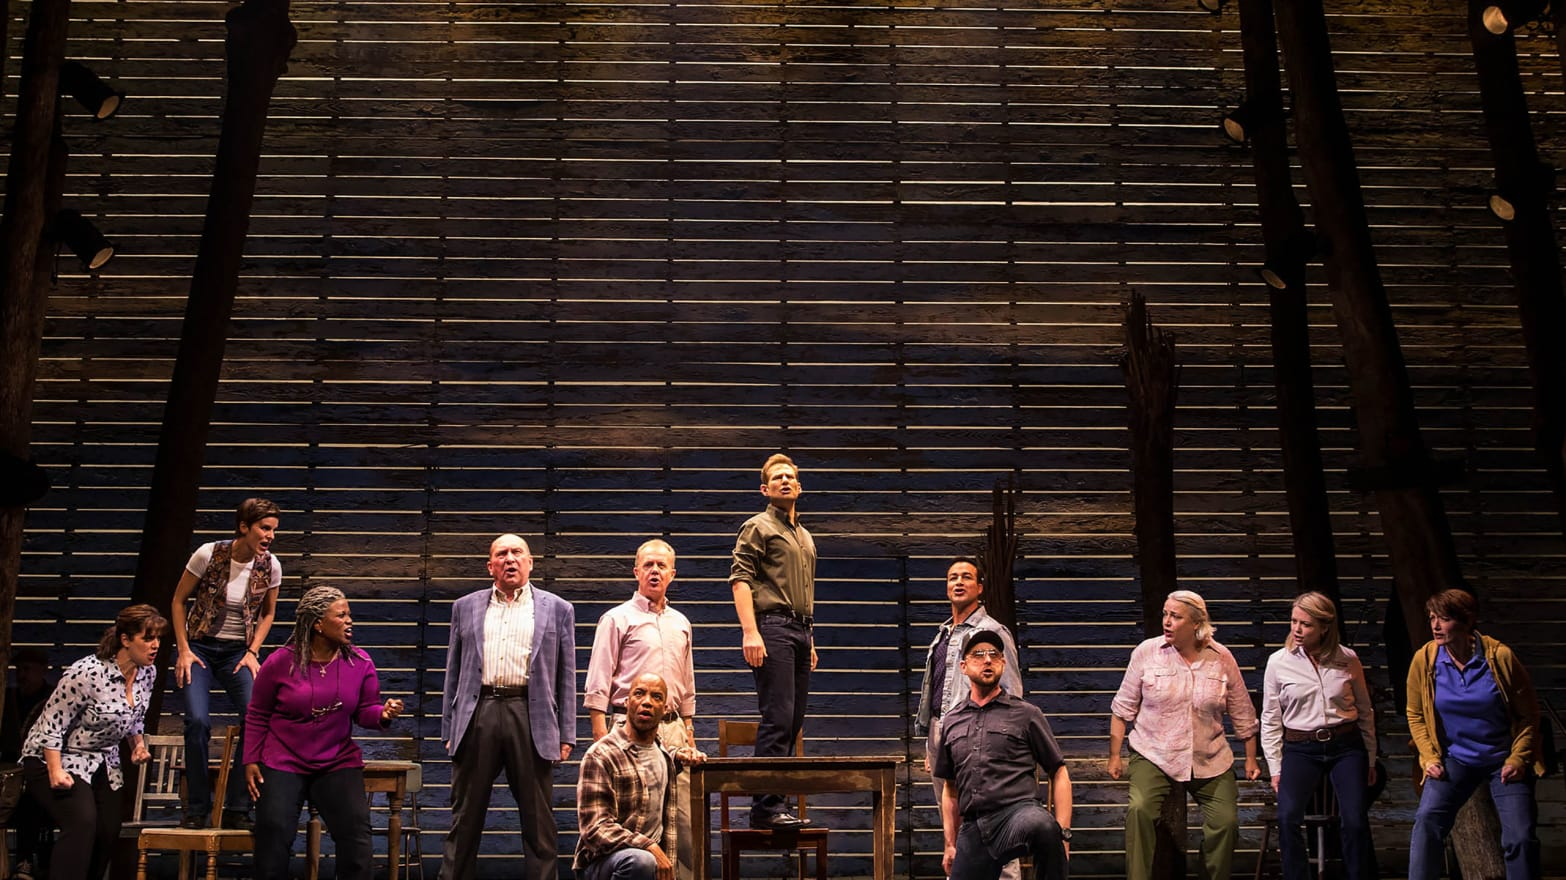 Review: How 'Come From Away' Makes a Broadway Musical Out of